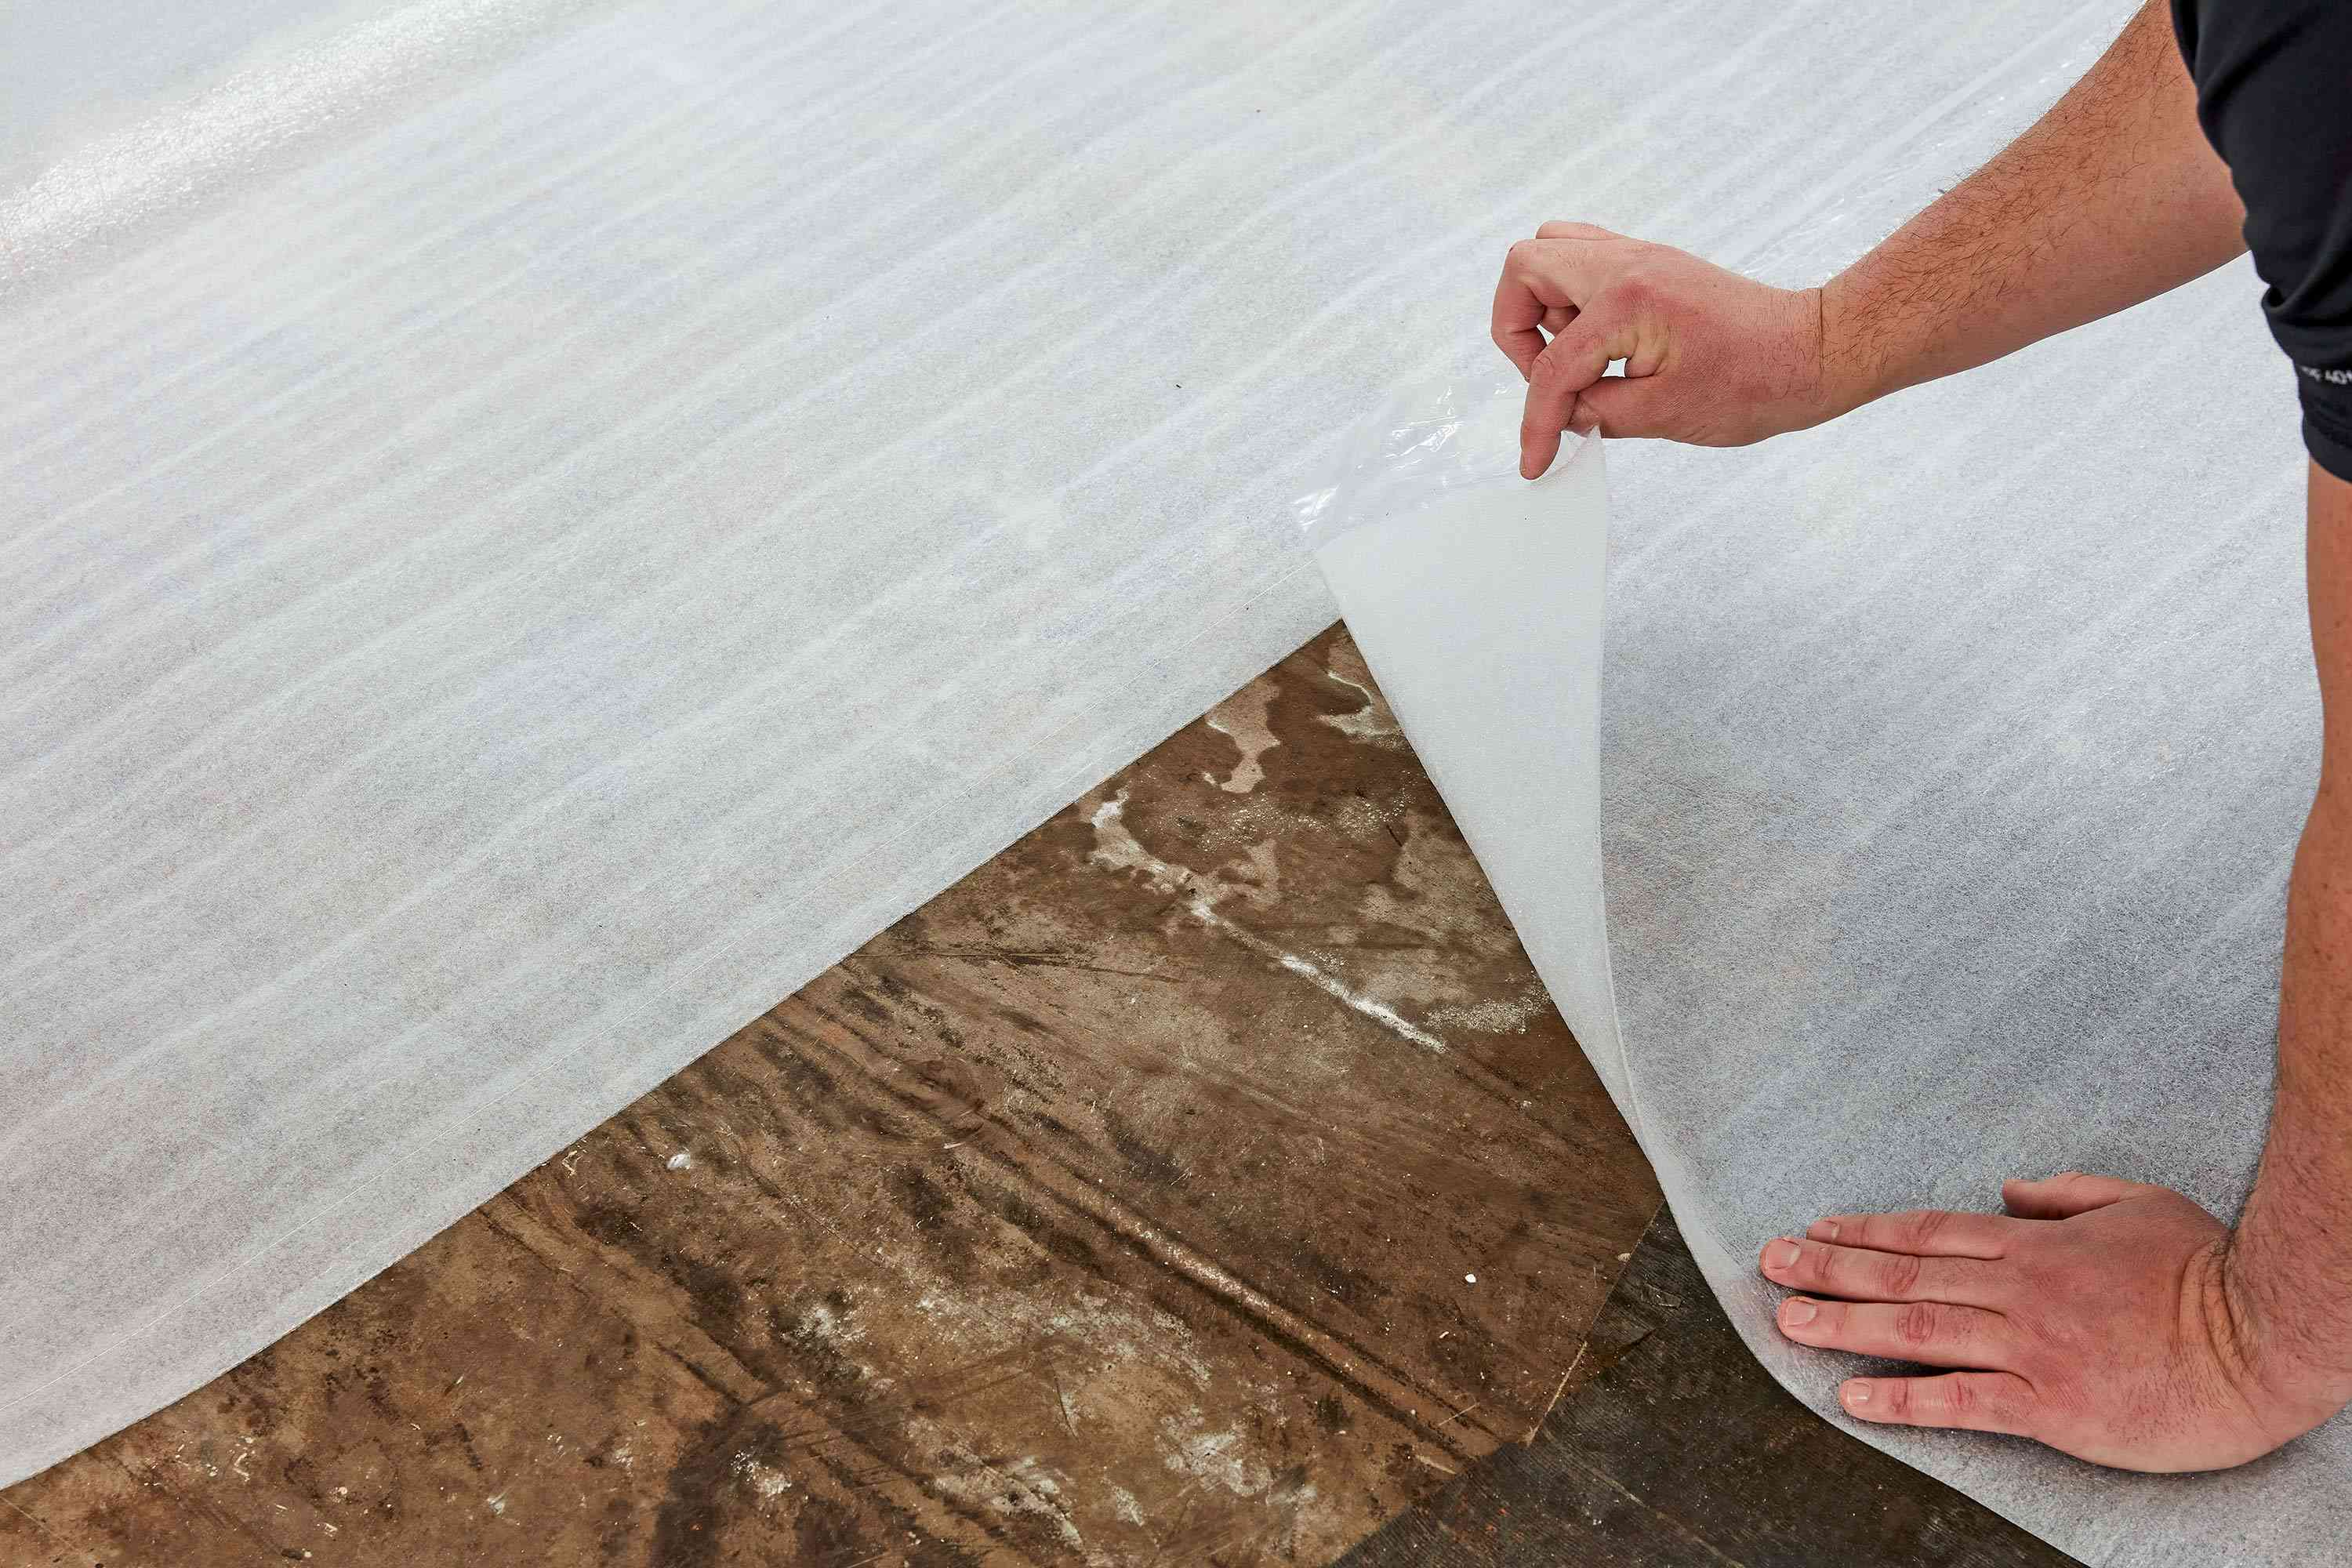 How To Install Laminate Flooring, Can I Install Laminate Flooring Over Old